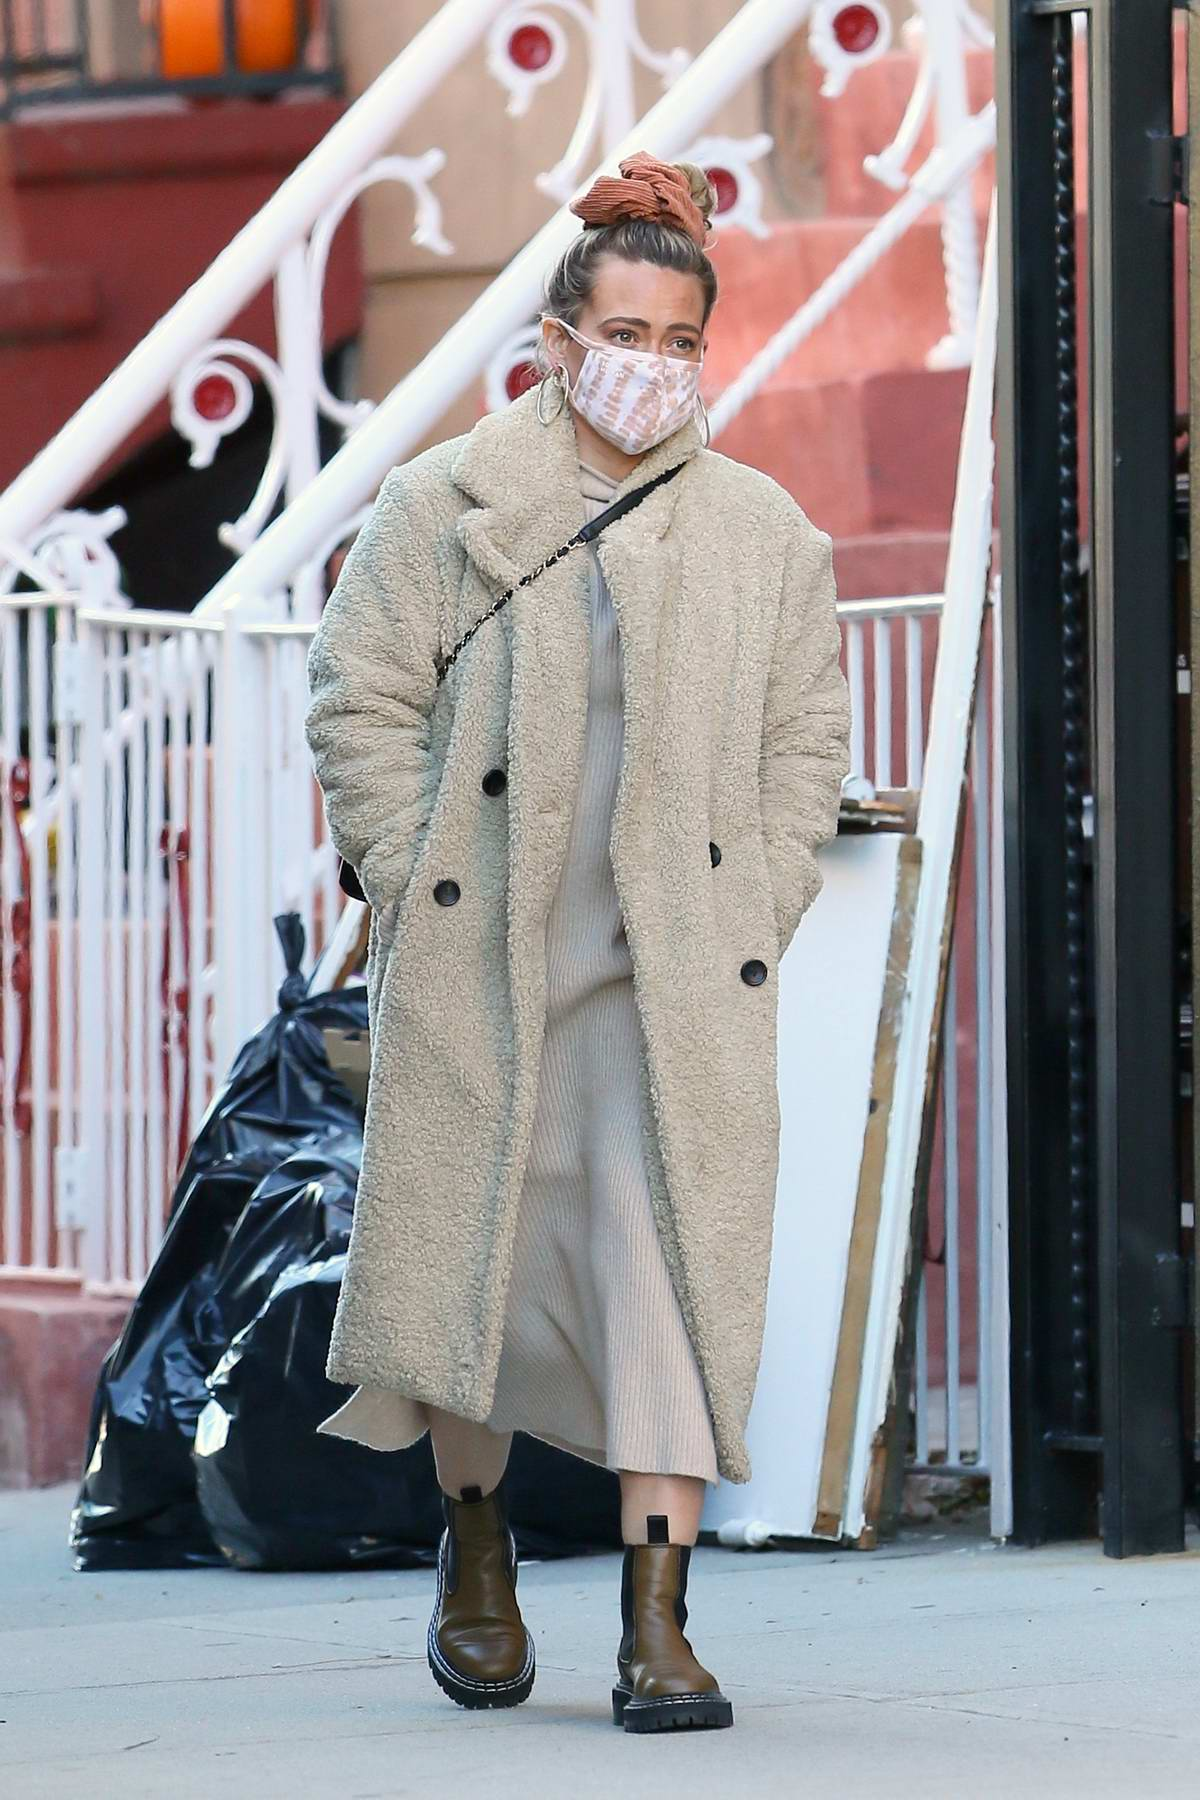 Hilary Duff bundles up in a teddy coat as she steps out on a chilly day in New York City